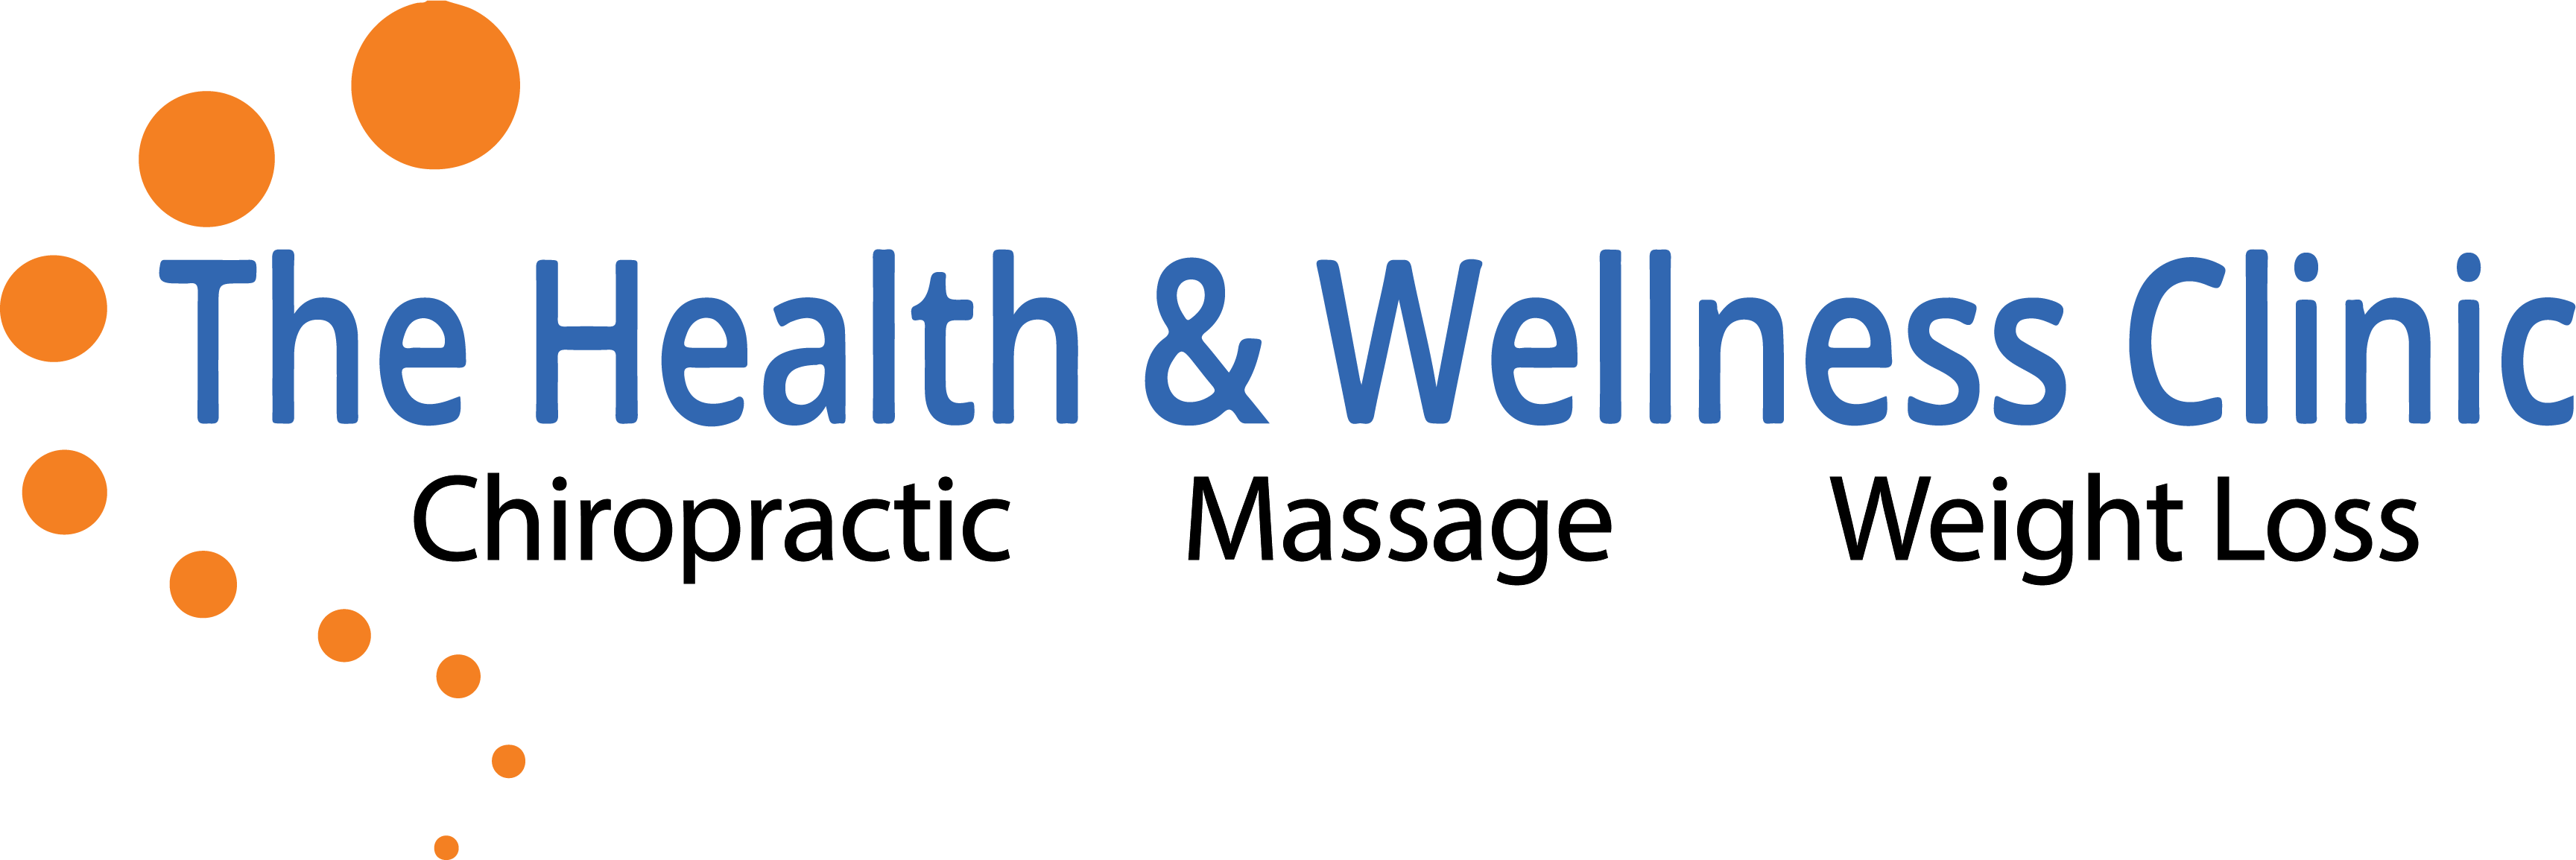 The Health & Wellness Clinic KC